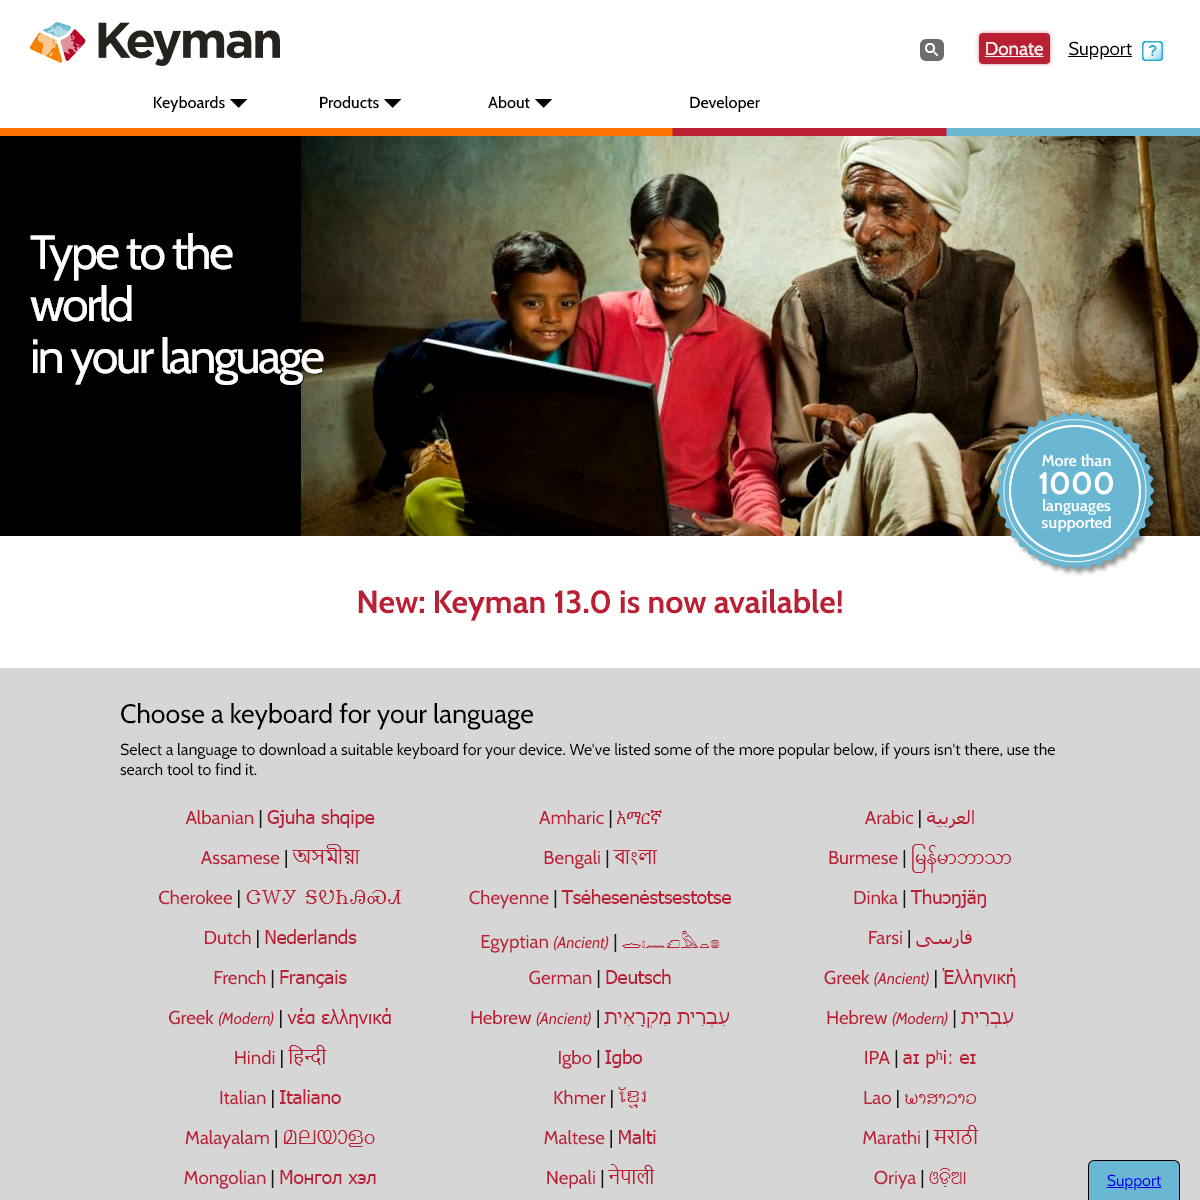 Keyman - Type to the world in your language